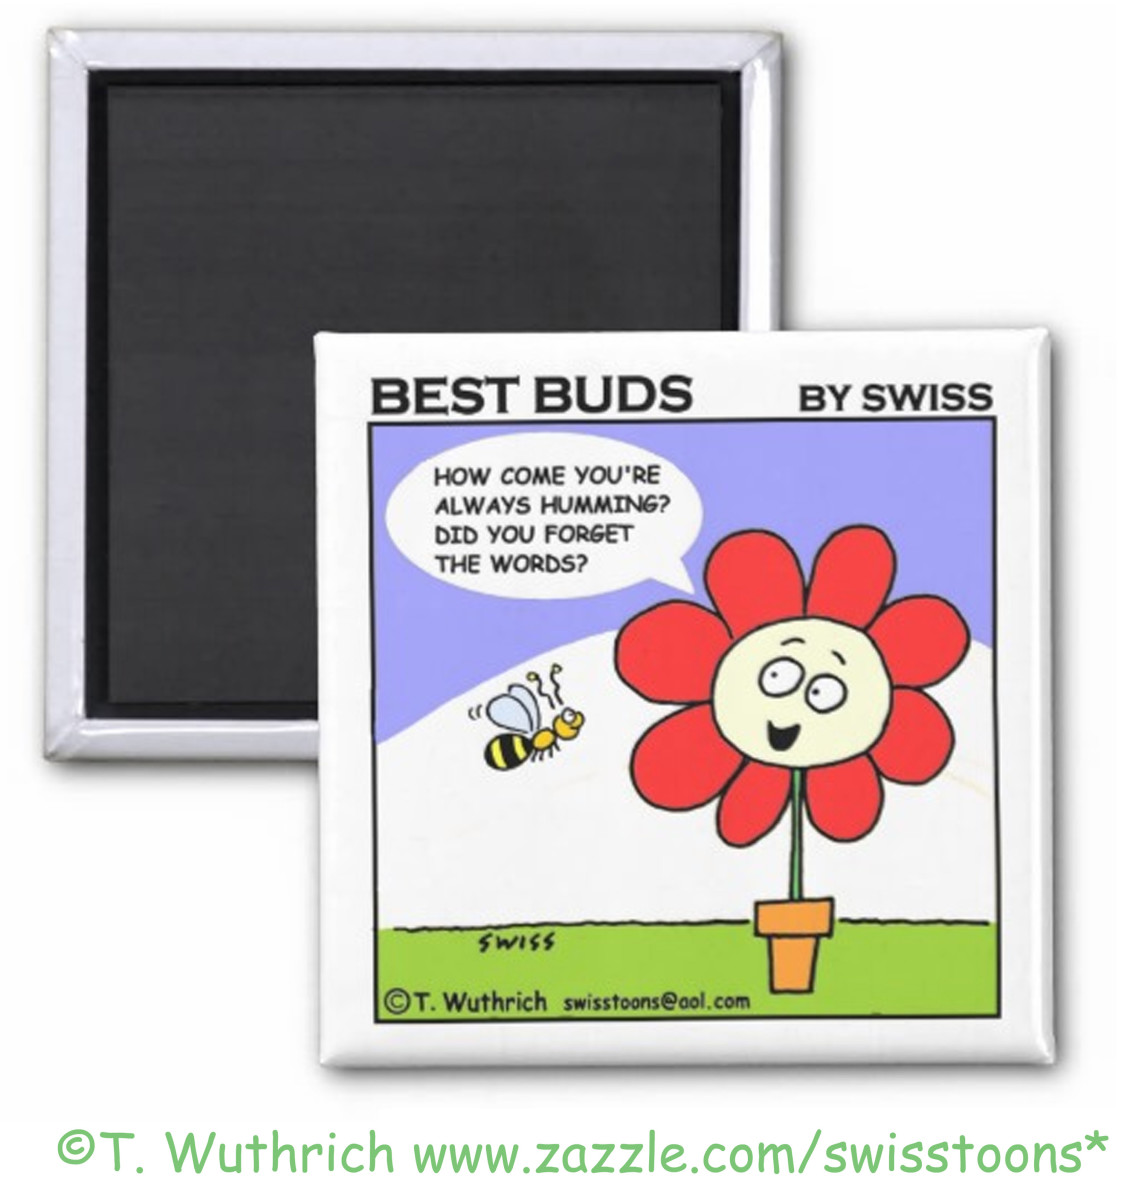 Cute red flower and bee friend cartoon by Swisstoons.